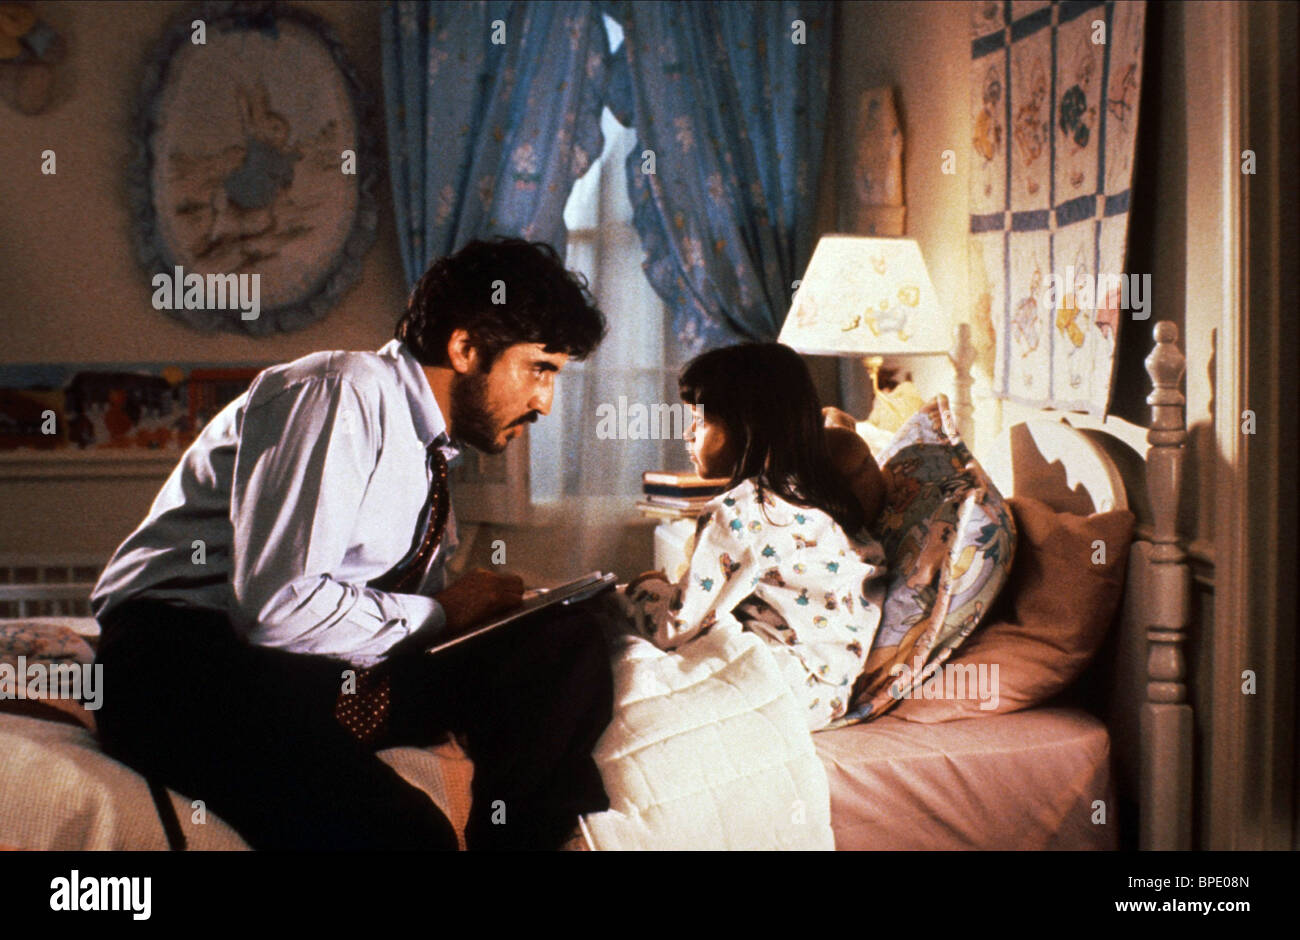 ALFRED MOLINA & SHEILA ROSENTHAL NOT WITHOUT MY DAUGHTER (1991) - Stock Image